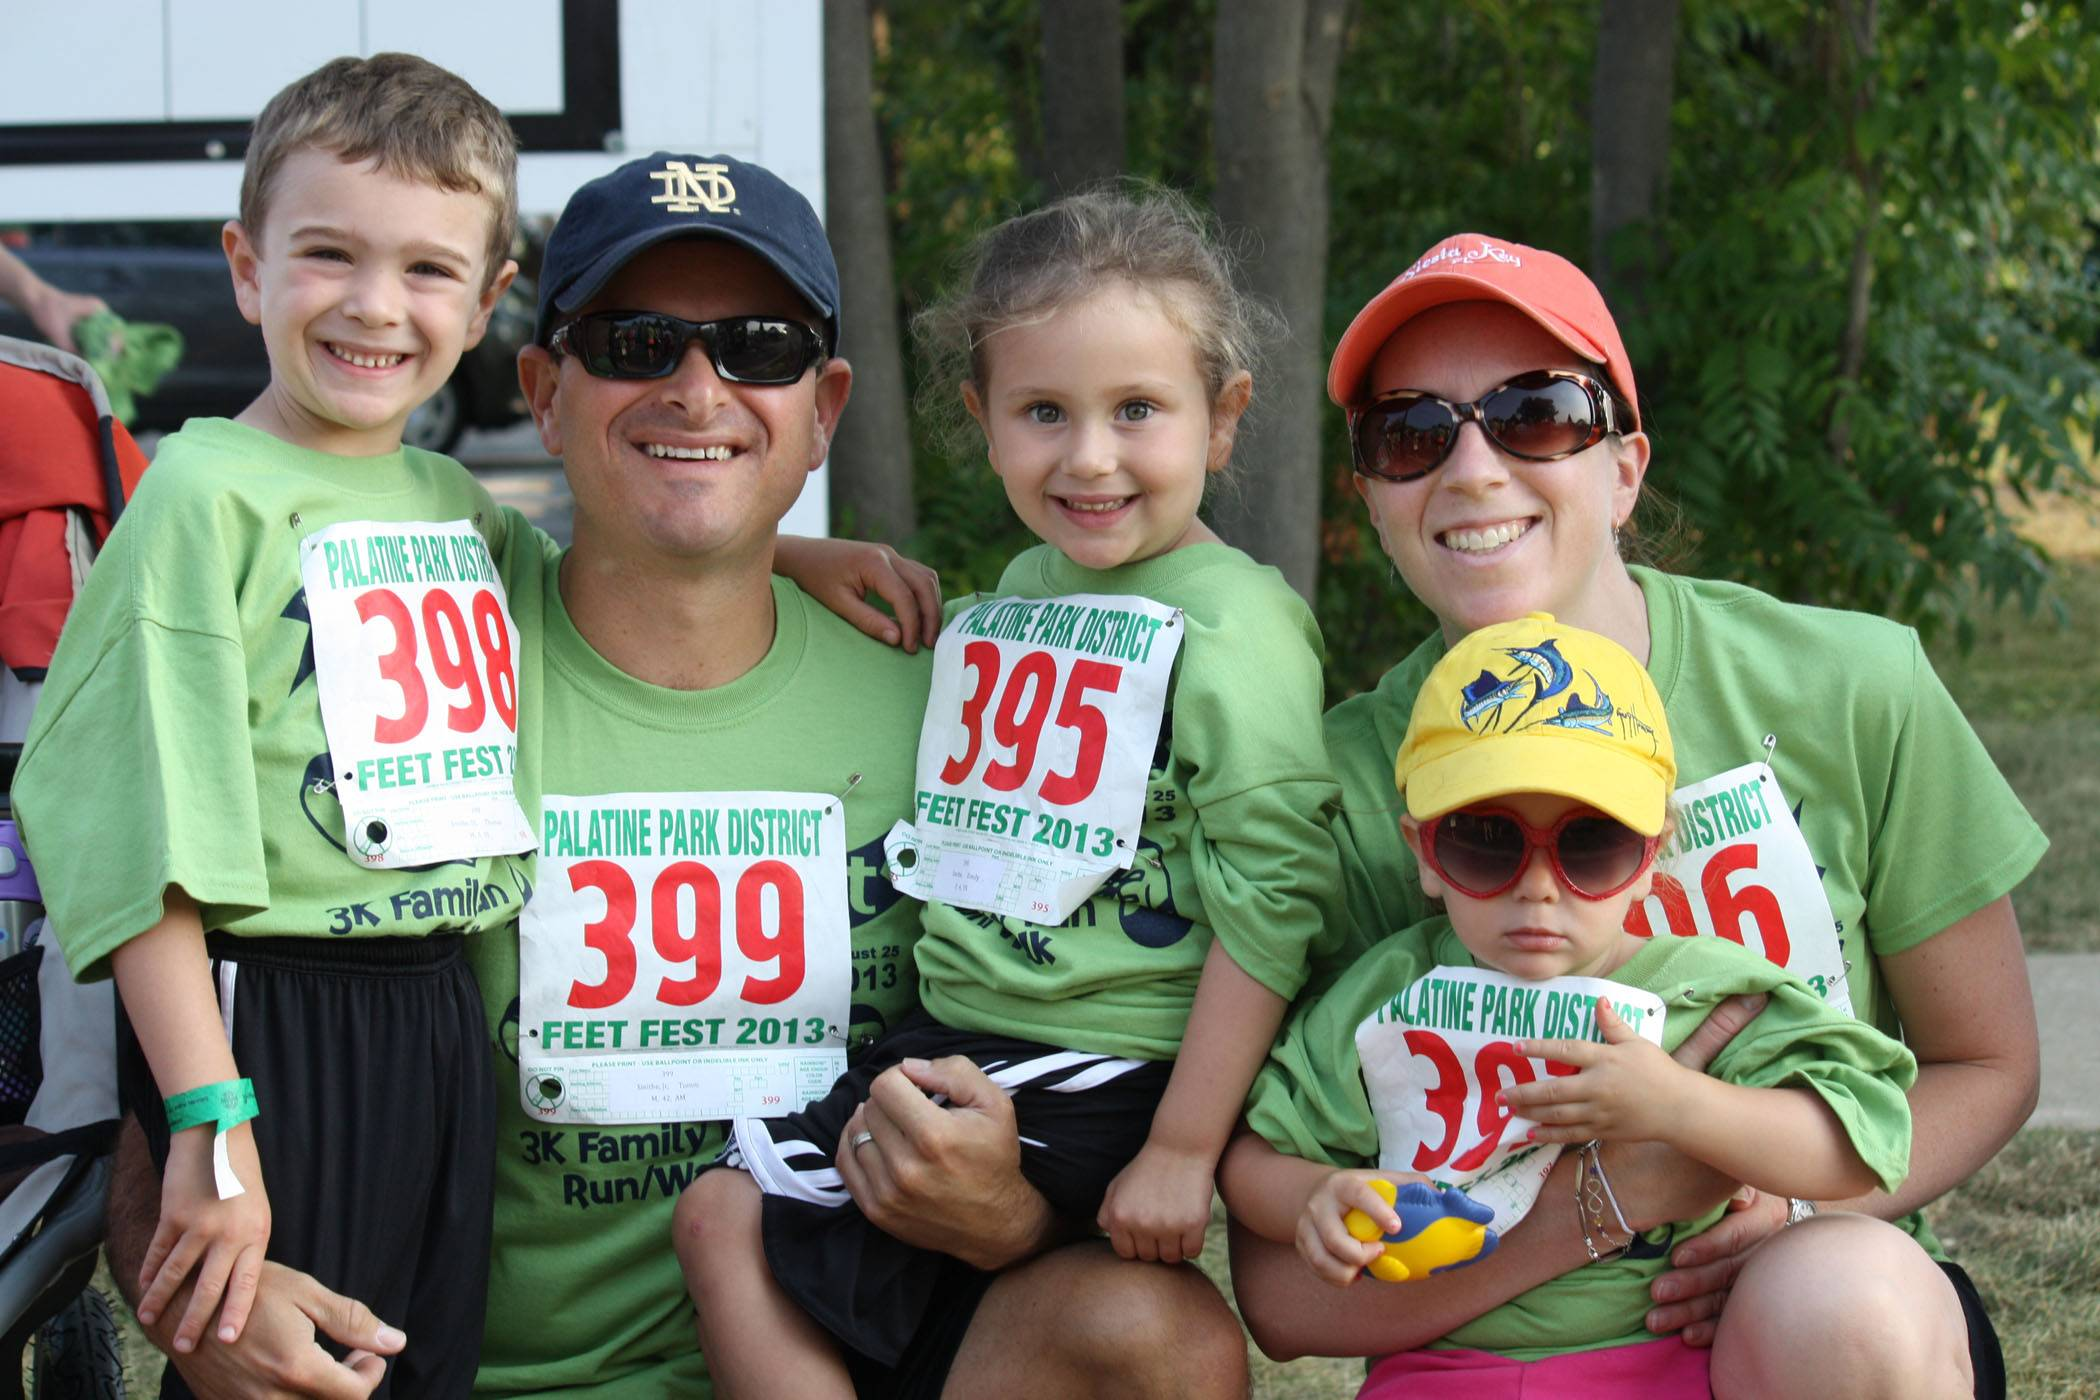 Runners and walkers of all ages come out for the annual Feet Fest 3K Family Fun Run/Walk in Palatine.